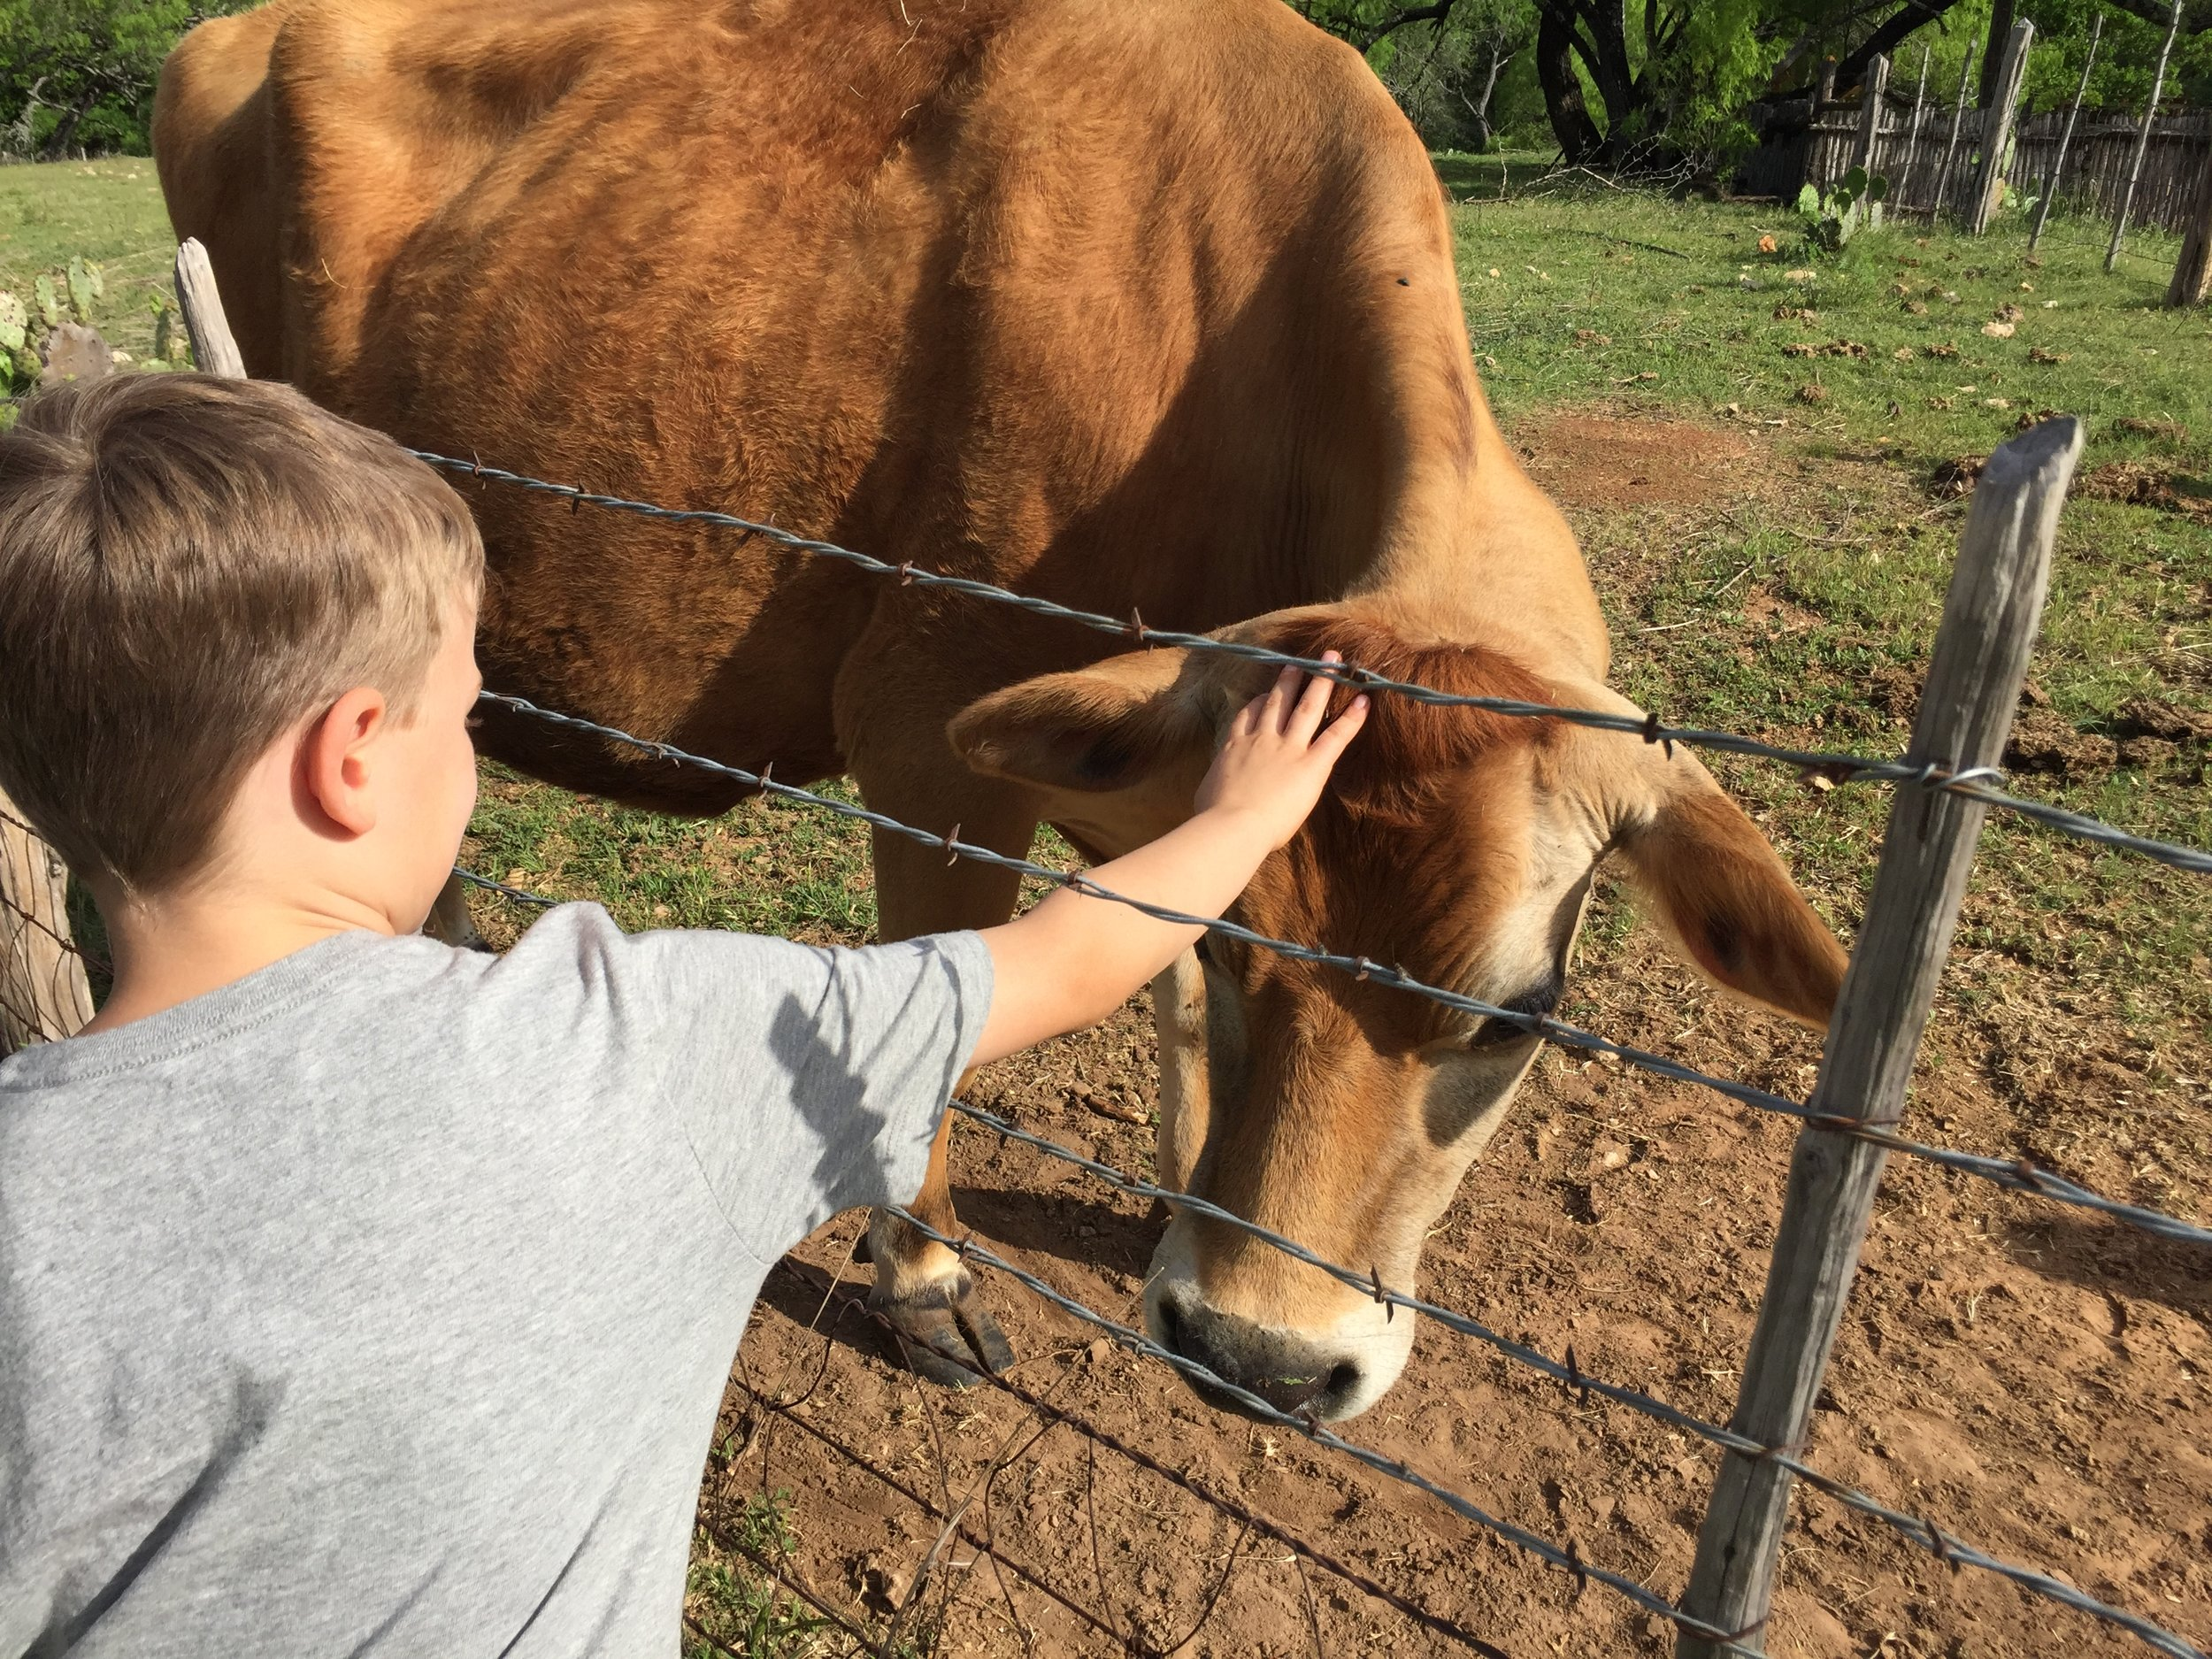 Checking out the cows at theLBJ ranch